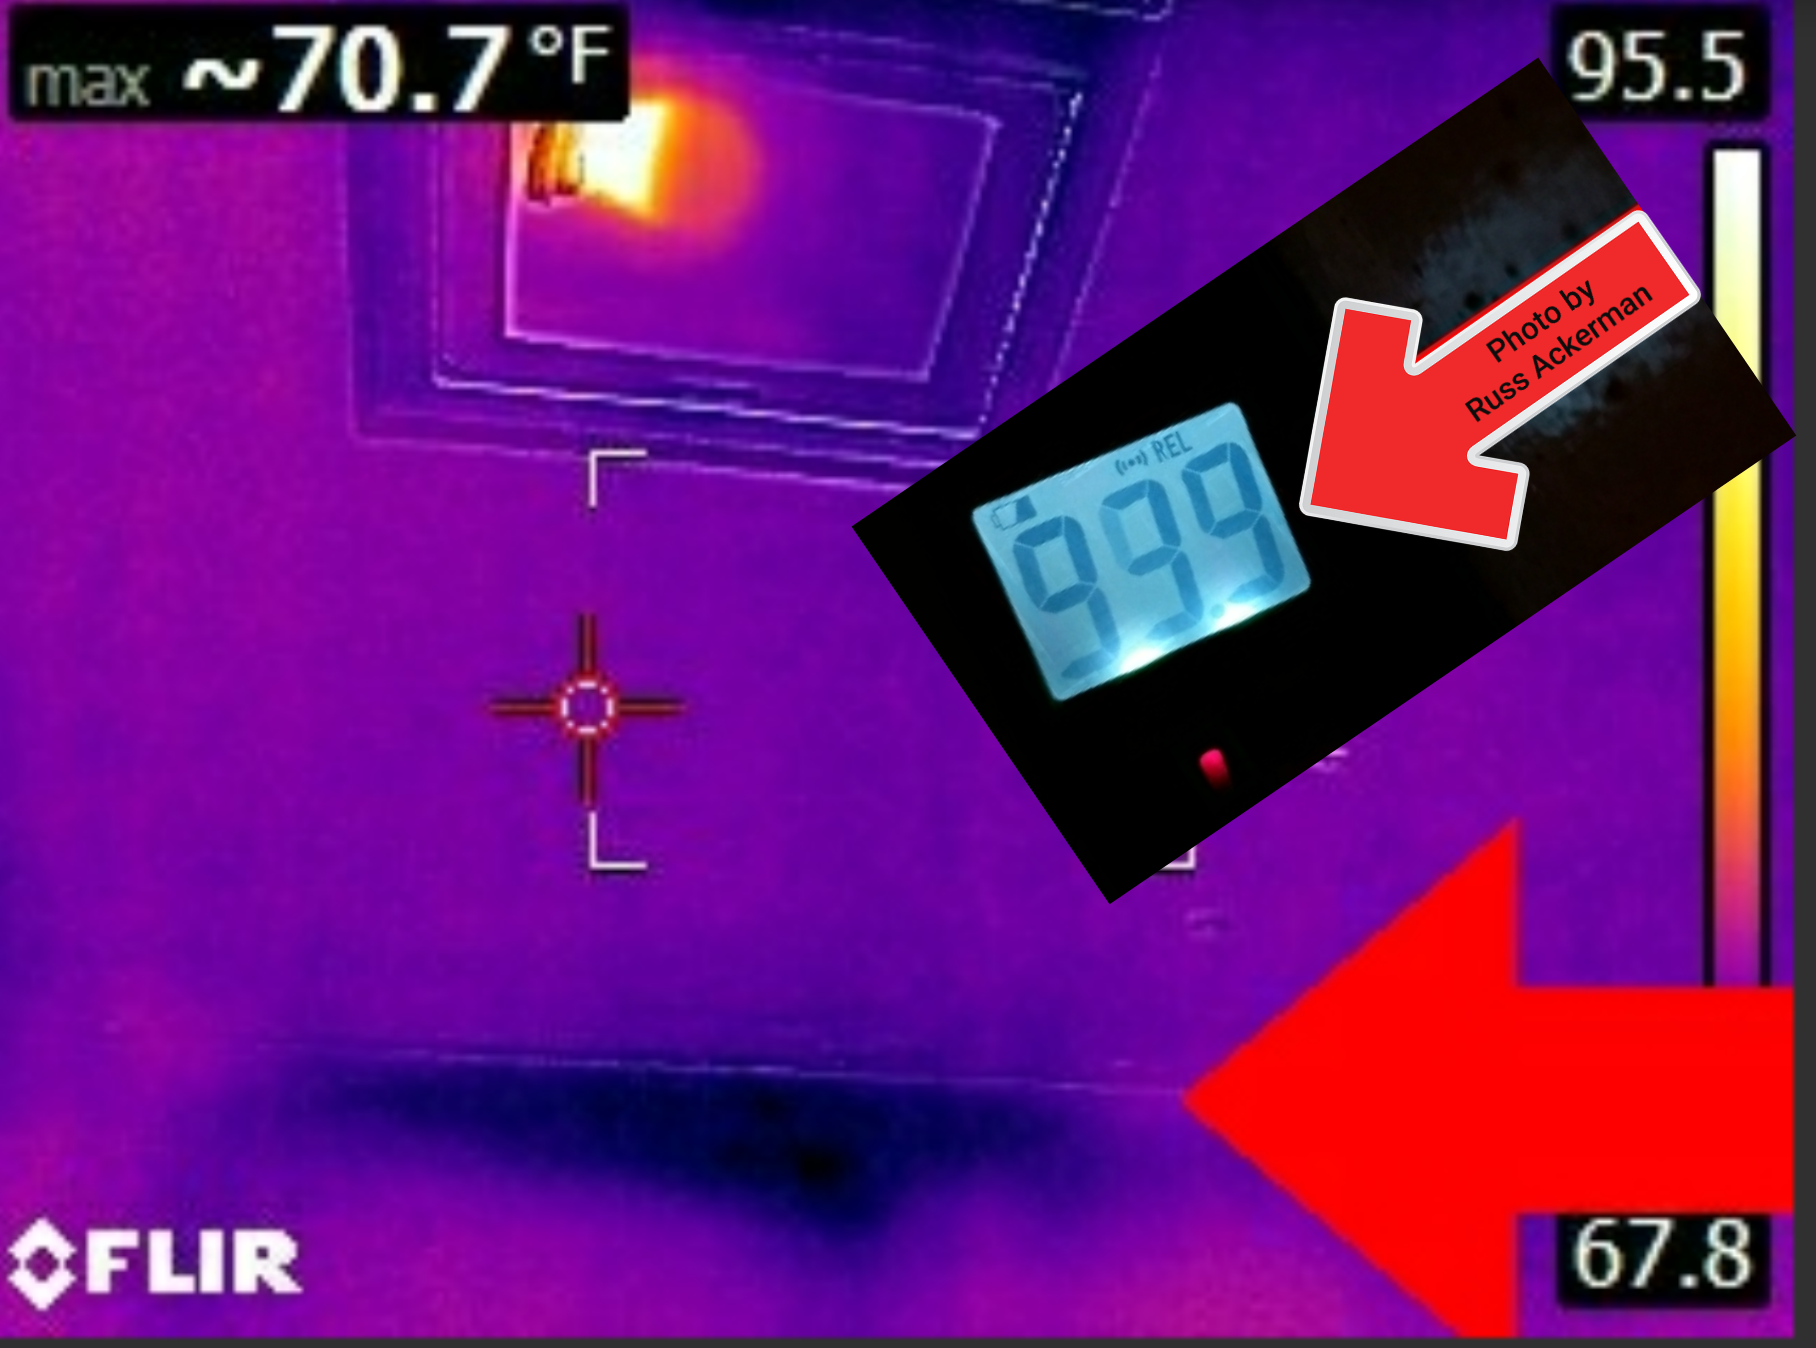 Water damage and perfect conditions for mold growth are not always visible to the naked eye. Infrared thermal imaging and a moisture meter confirm an active leak with 100% saturation.